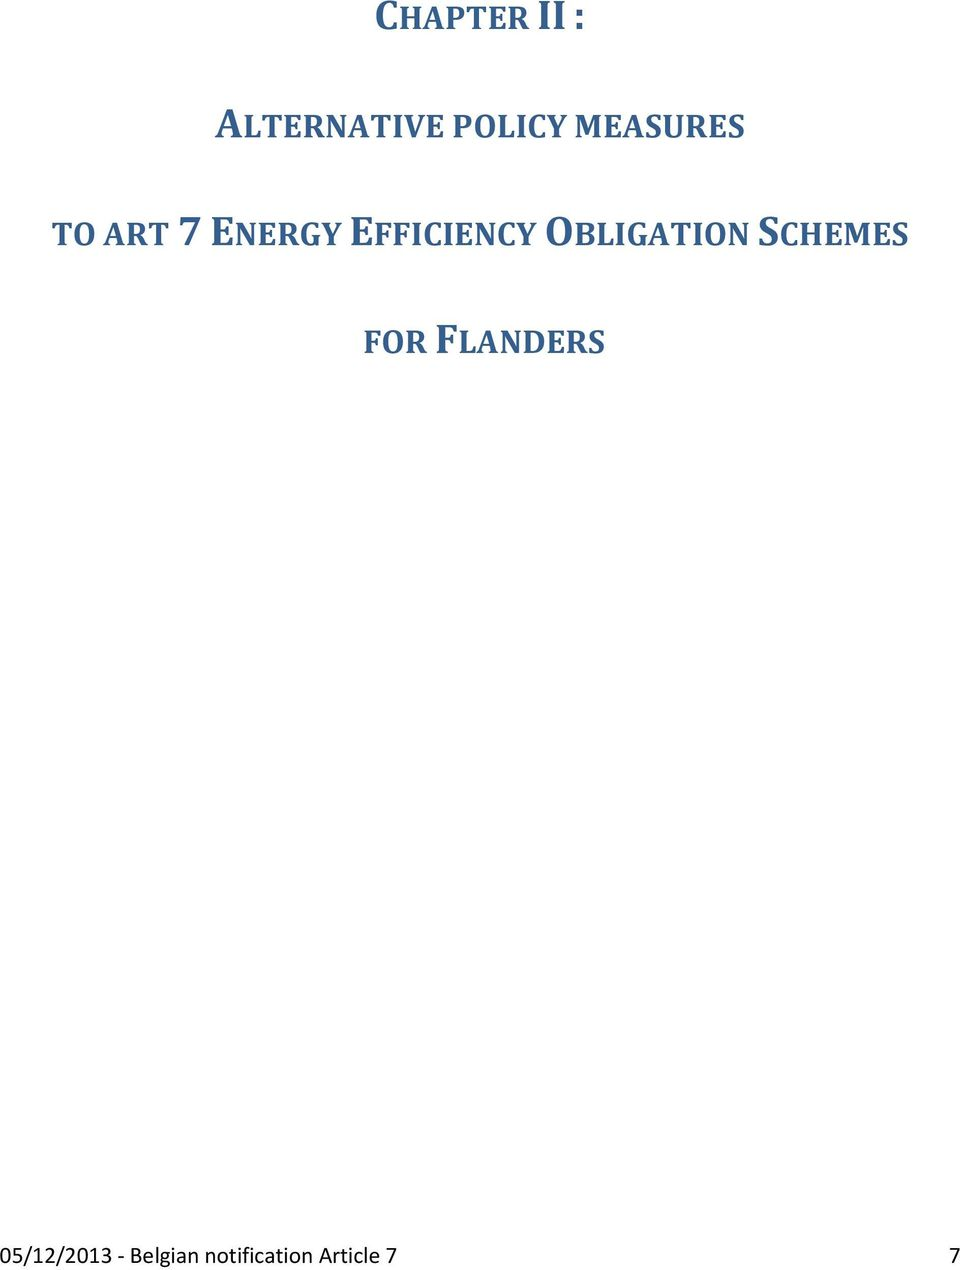 OBLIGATION SCHEMES FOR FLANDERS